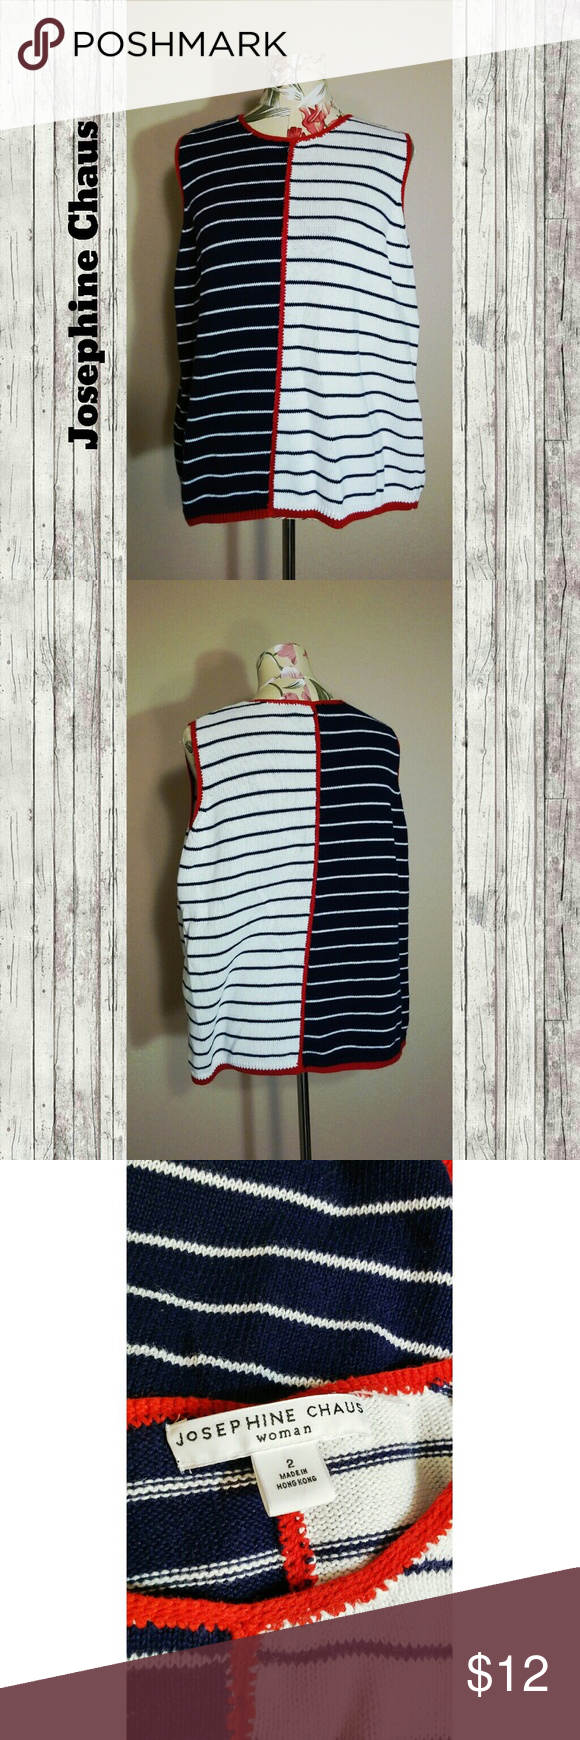 SplitColor Sweater A cute split color striped sweater with white, navy, and red. Tags: casual warm nautical Josephine Chaus Sweaters